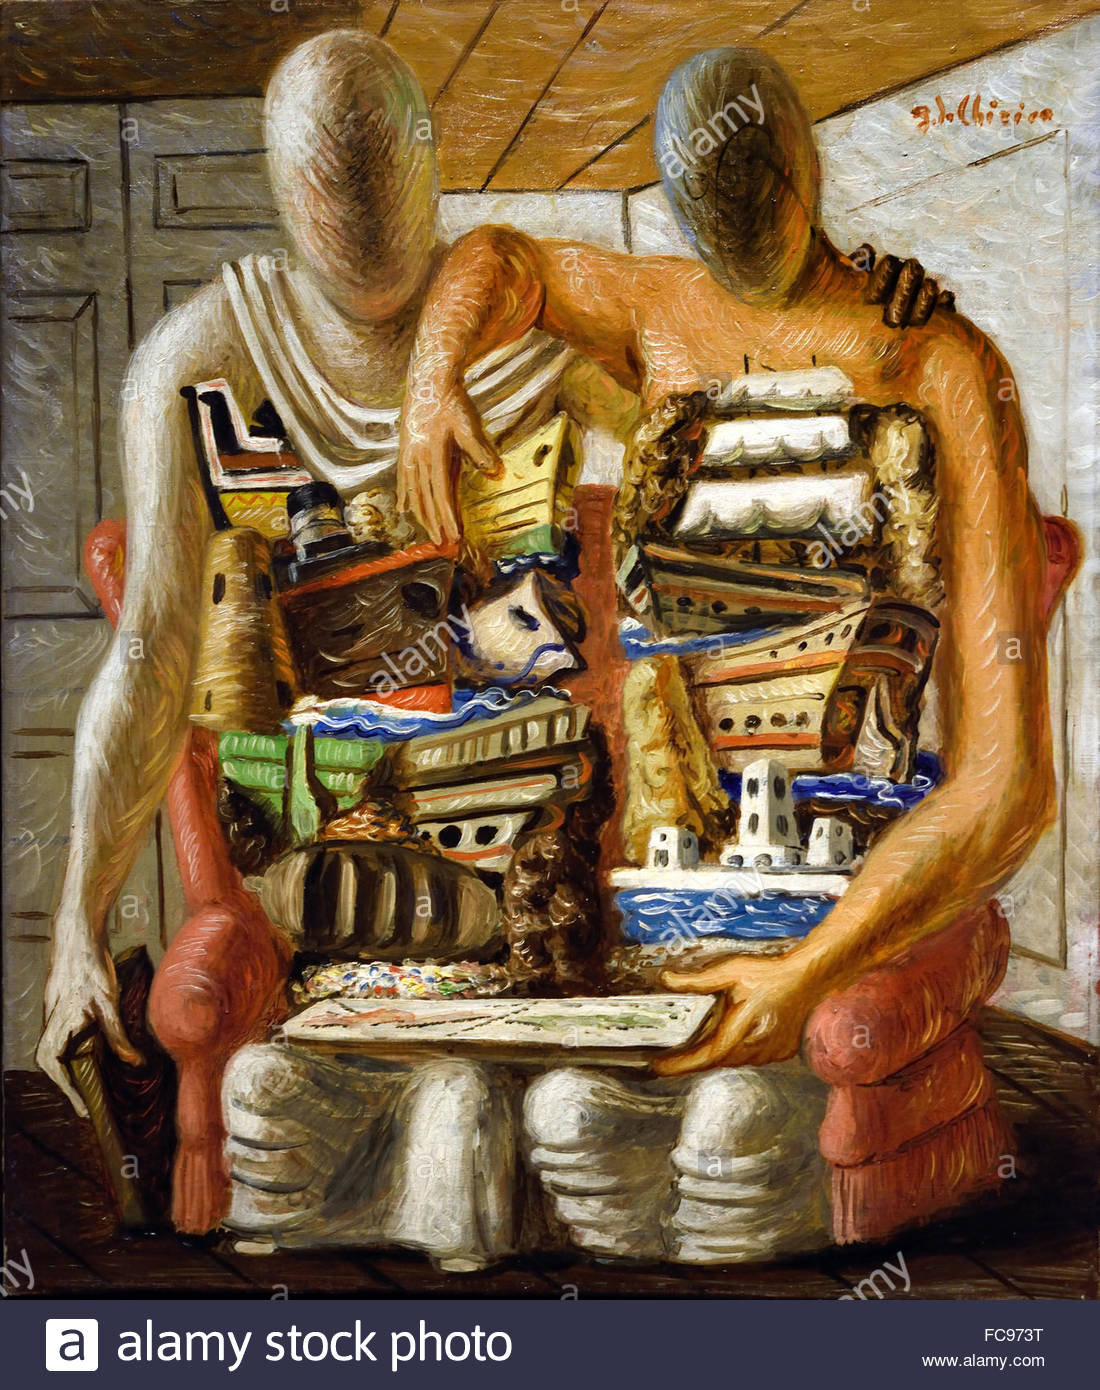 Two Figures 1920 Giorgio de Chirico 1888 - 1978  Surrealist Italian painter - Stock Image